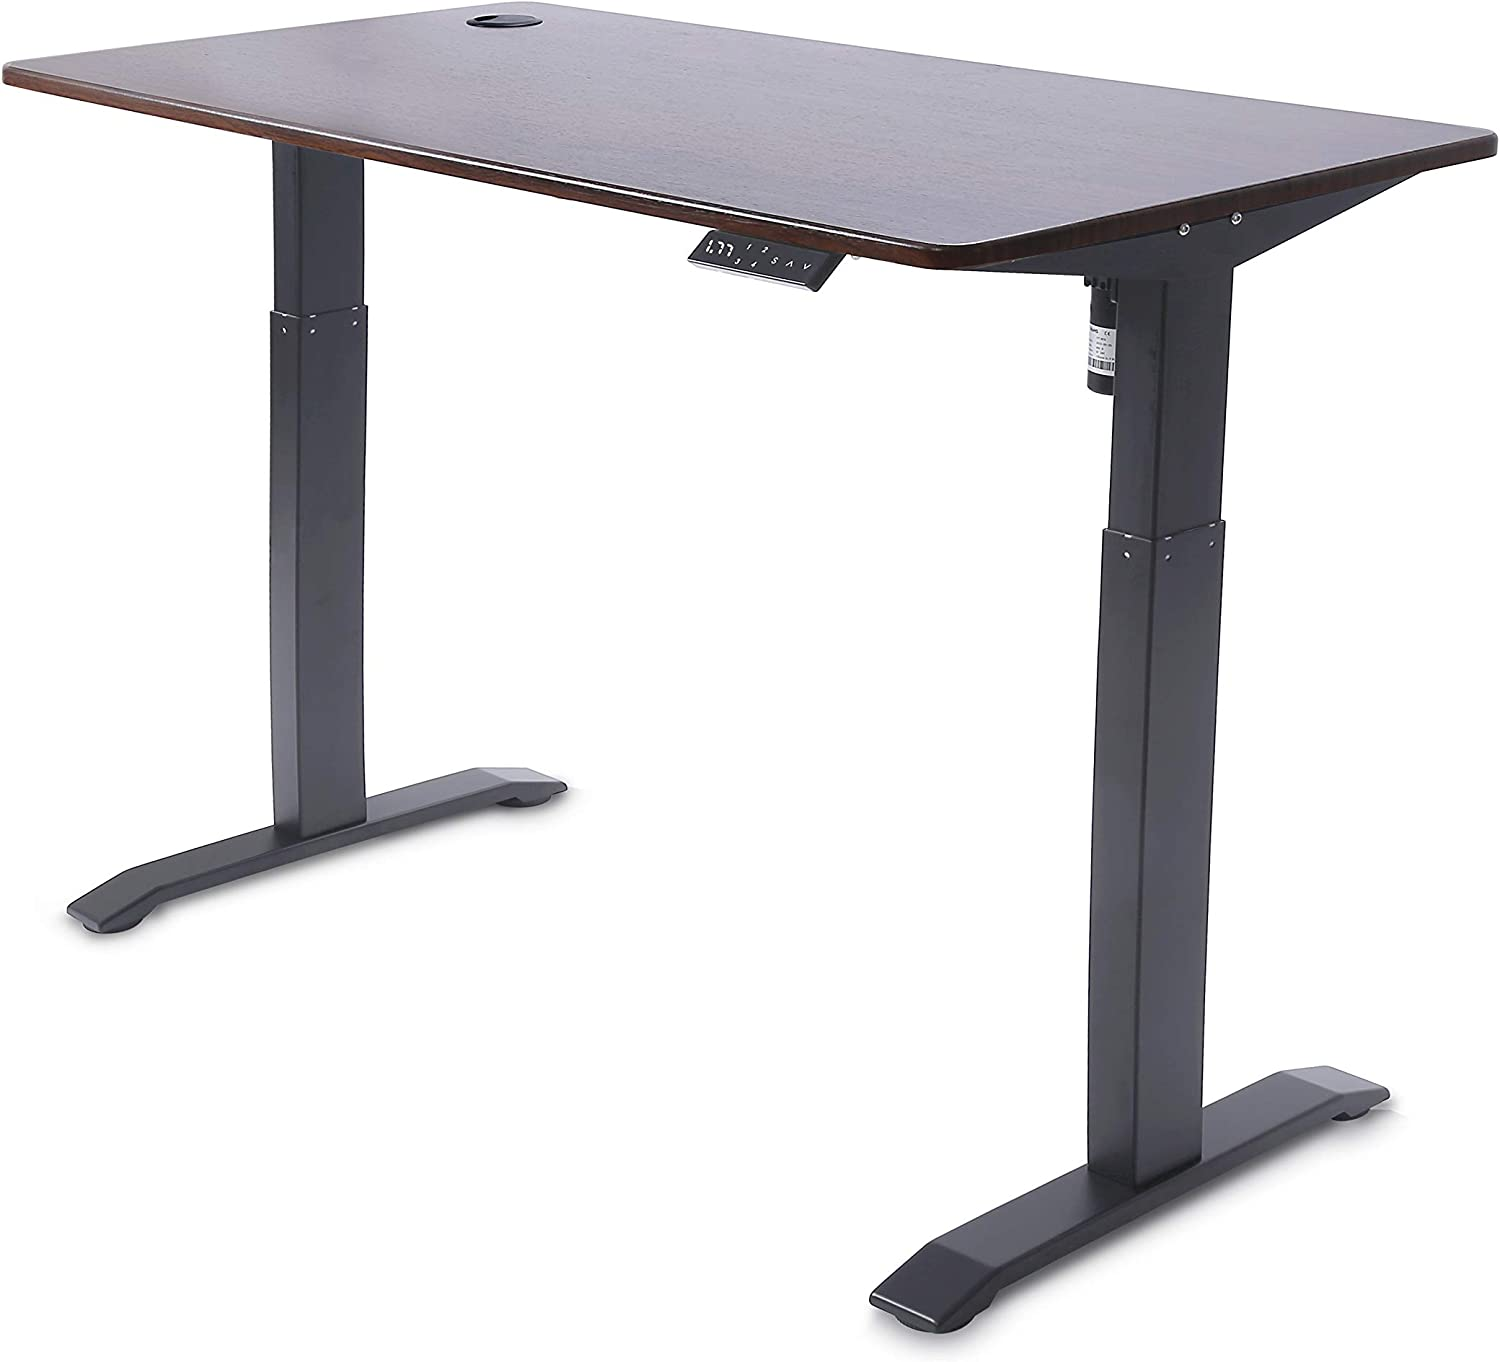 UNICOO - Electric Height Adjustable Standing Desk, Electric Standing Workstation Home Office Sit Stand Up Desk with 4 Pre-Set Memory Led Display Controller (Mahogany Top/Black Legs - Electric)